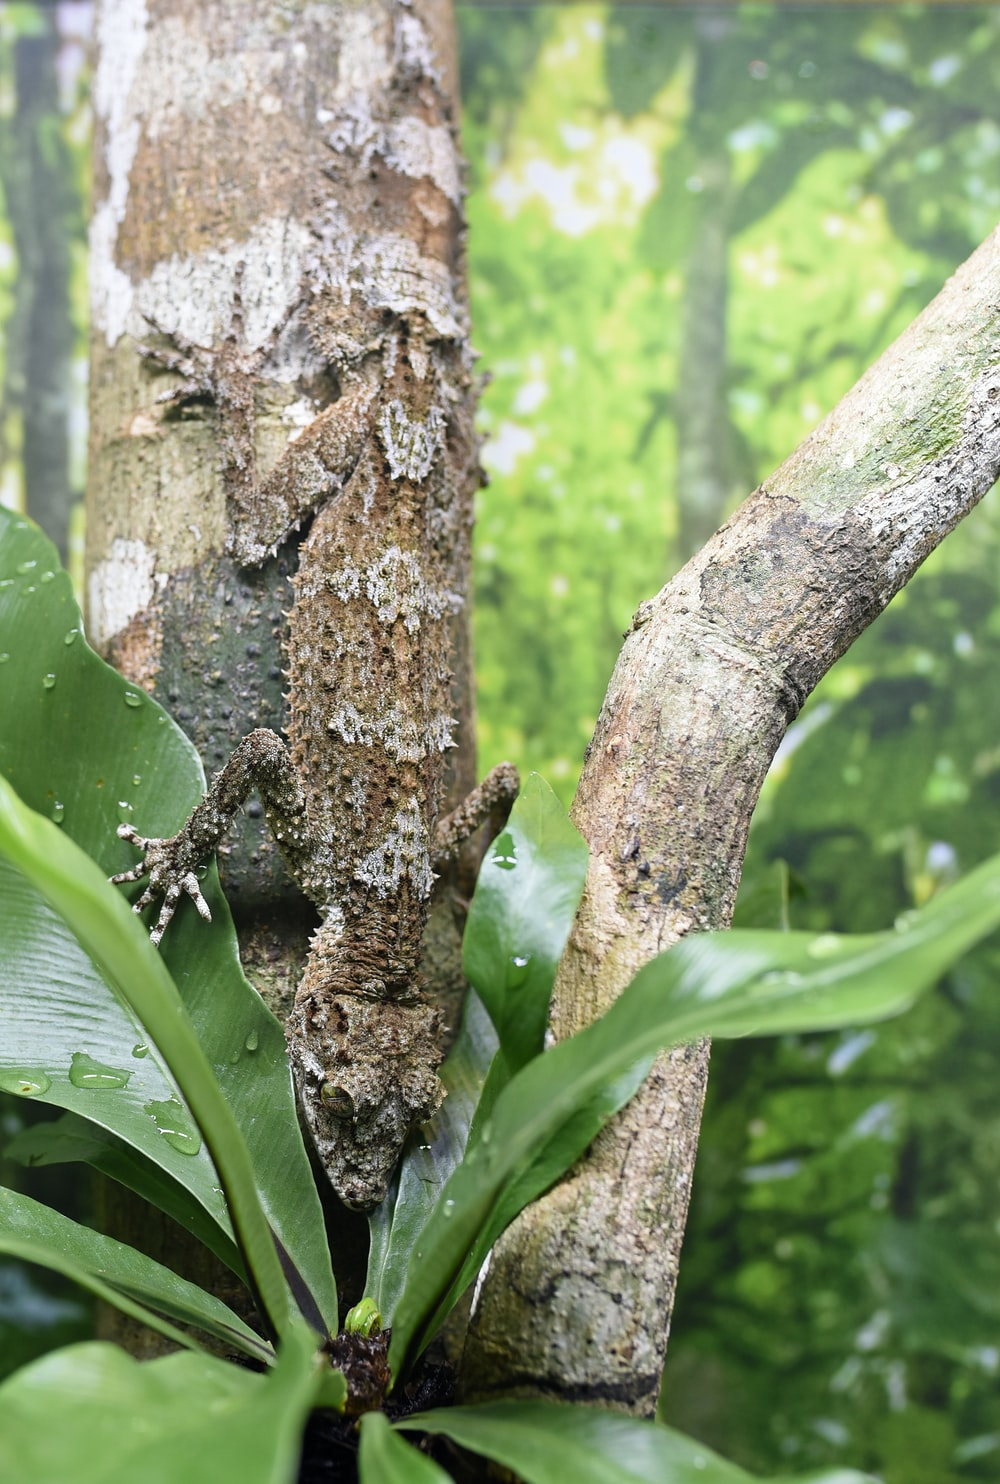 brown and black lizard on branch of tree